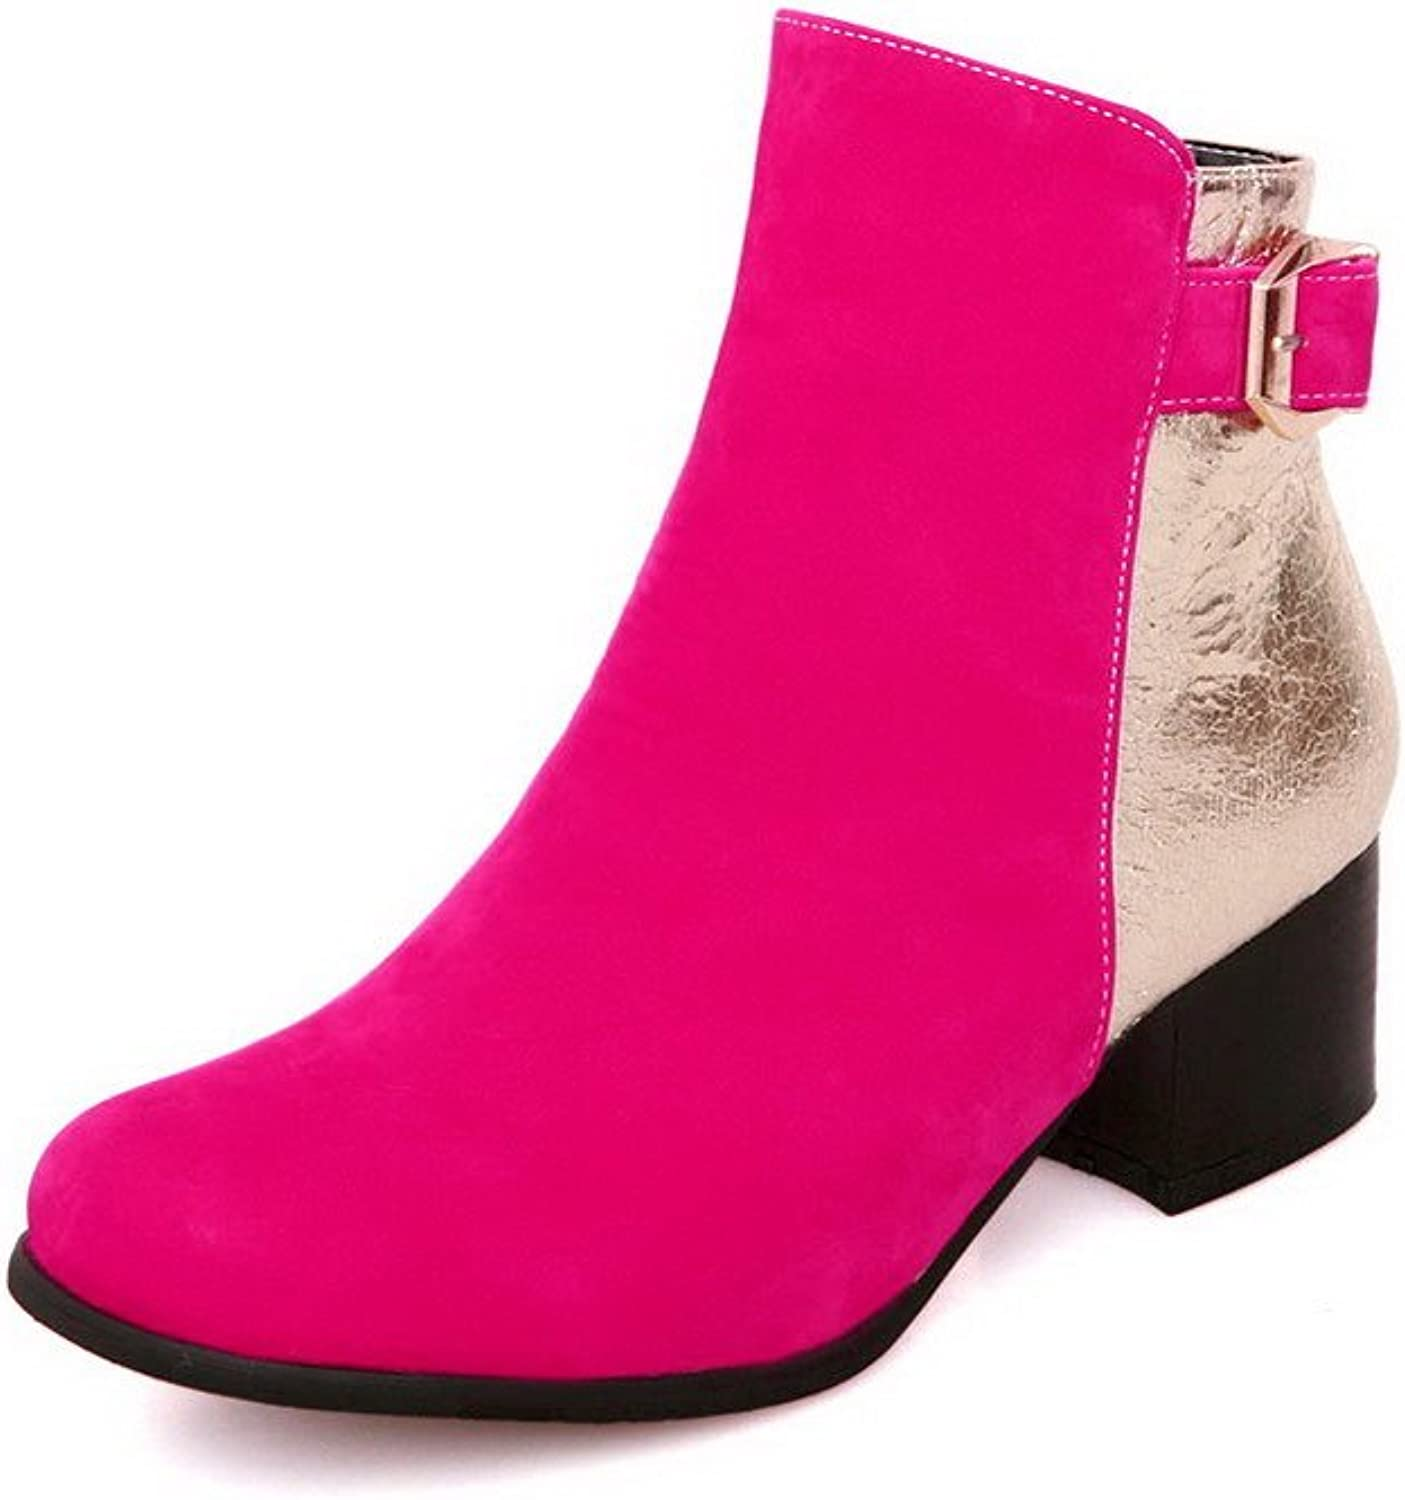 WeenFashion Women's Kitten-Heels Assorted color Round Closed Toe Soft Material Zipper Boots